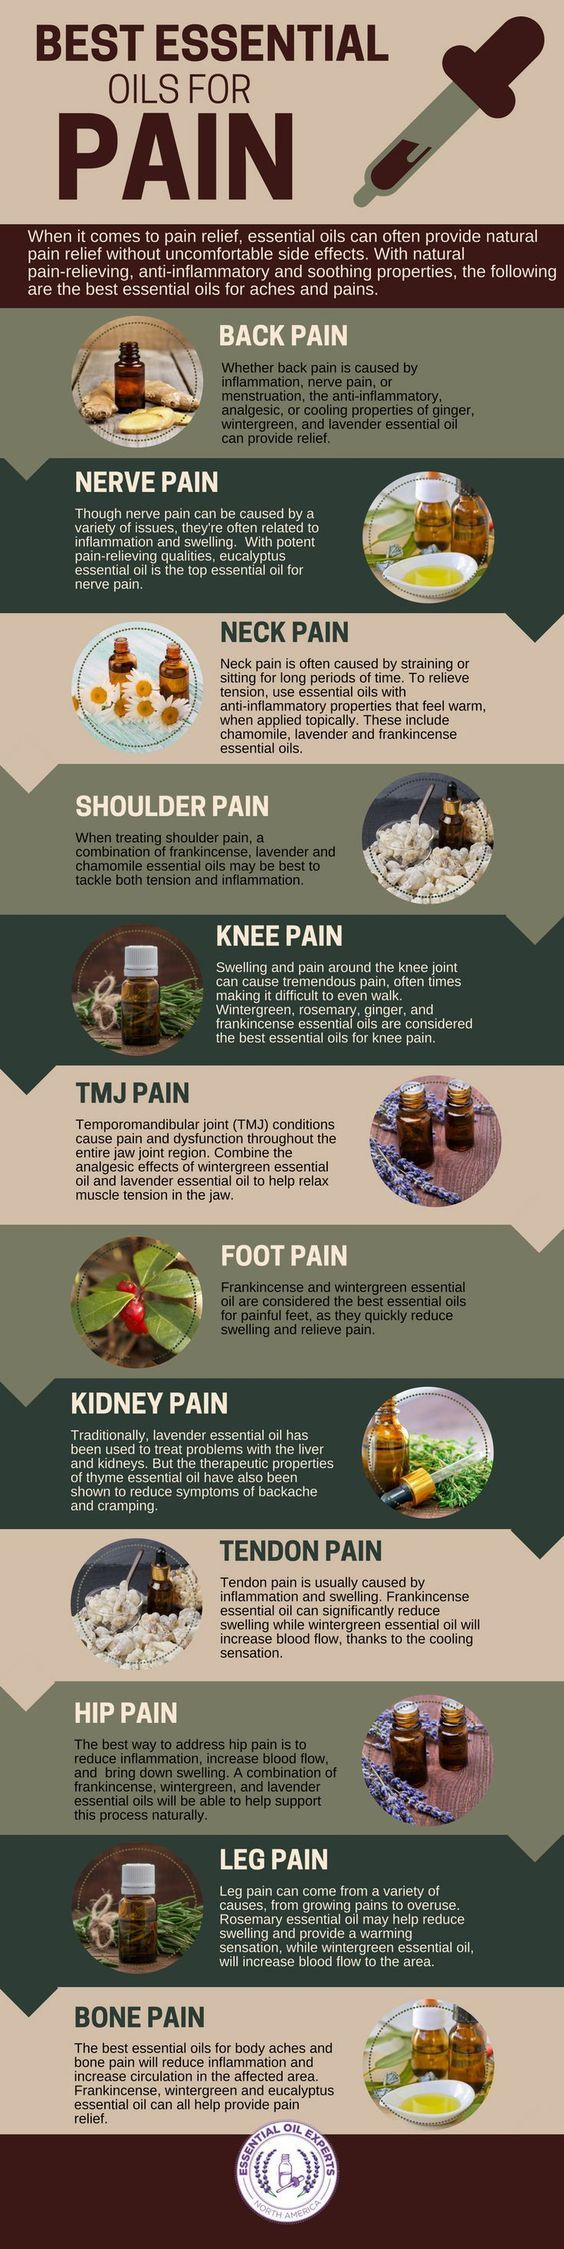 Best Essential Oils for Pain Management - Back, Nerve, Neck, Shoulder & Knee http://www.wartalooza.com/treatments/nail-polish